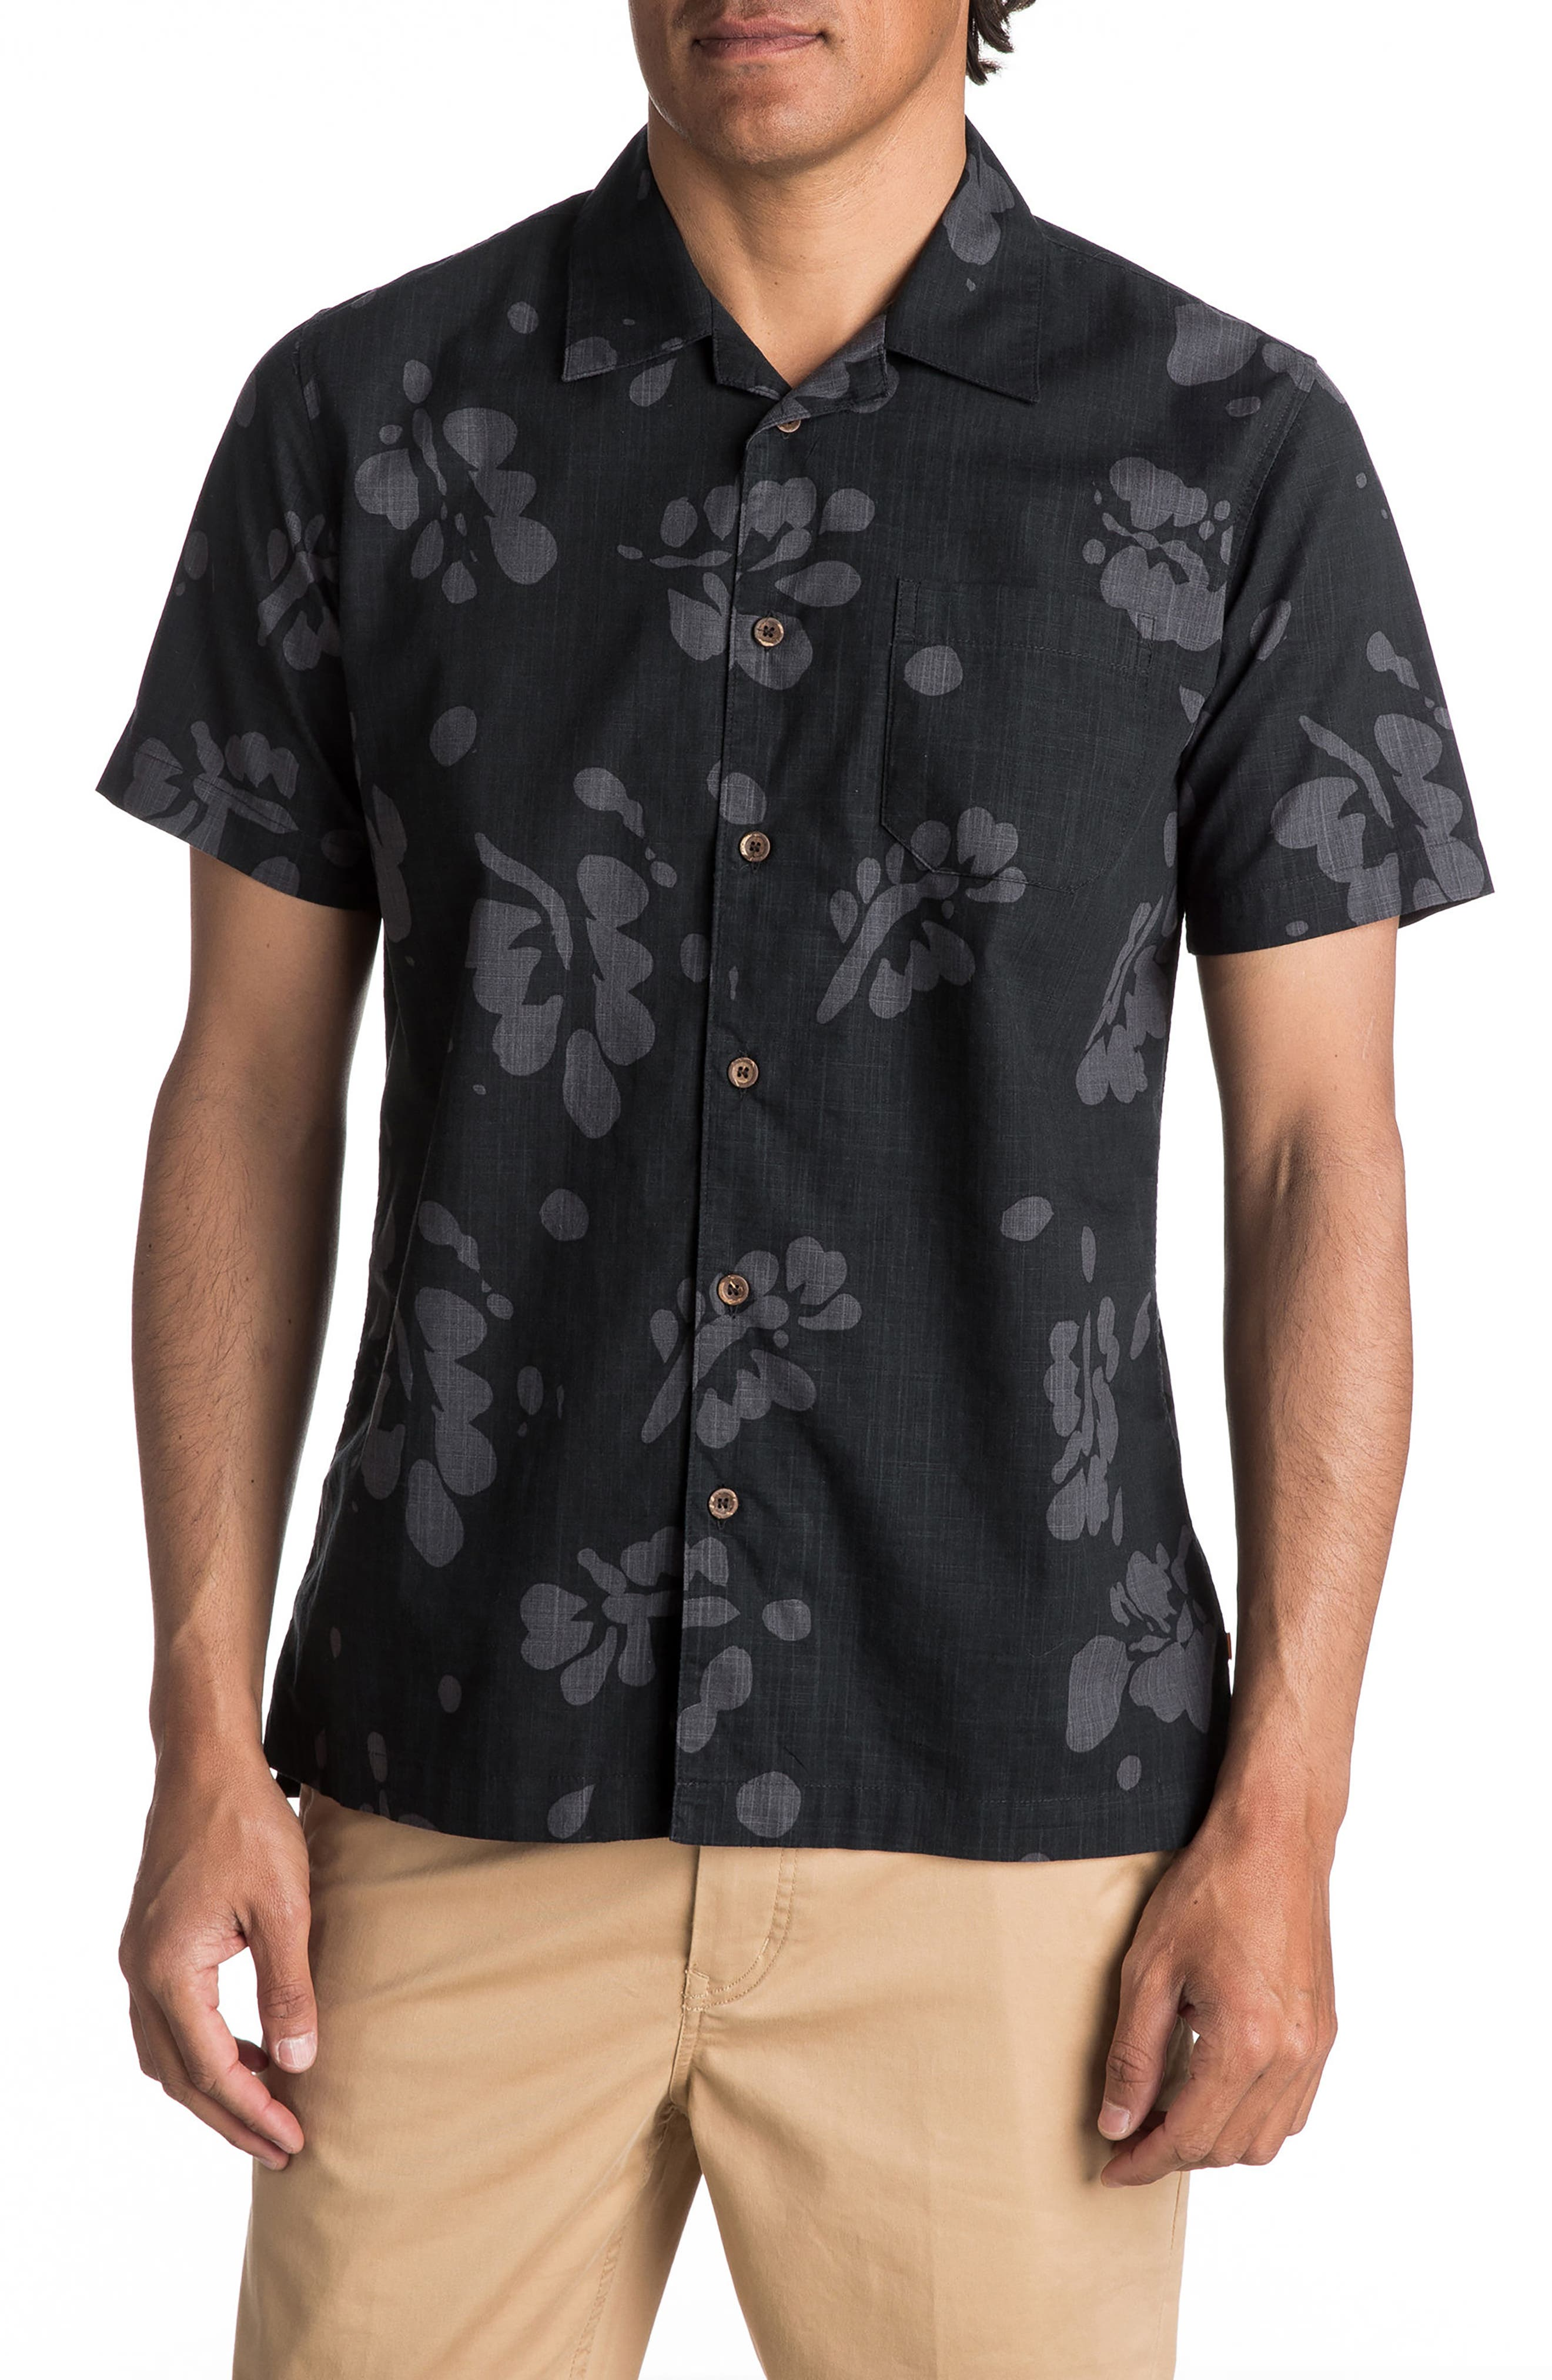 Quiksilver Waterman Collection Los Palmas Woven Shirt